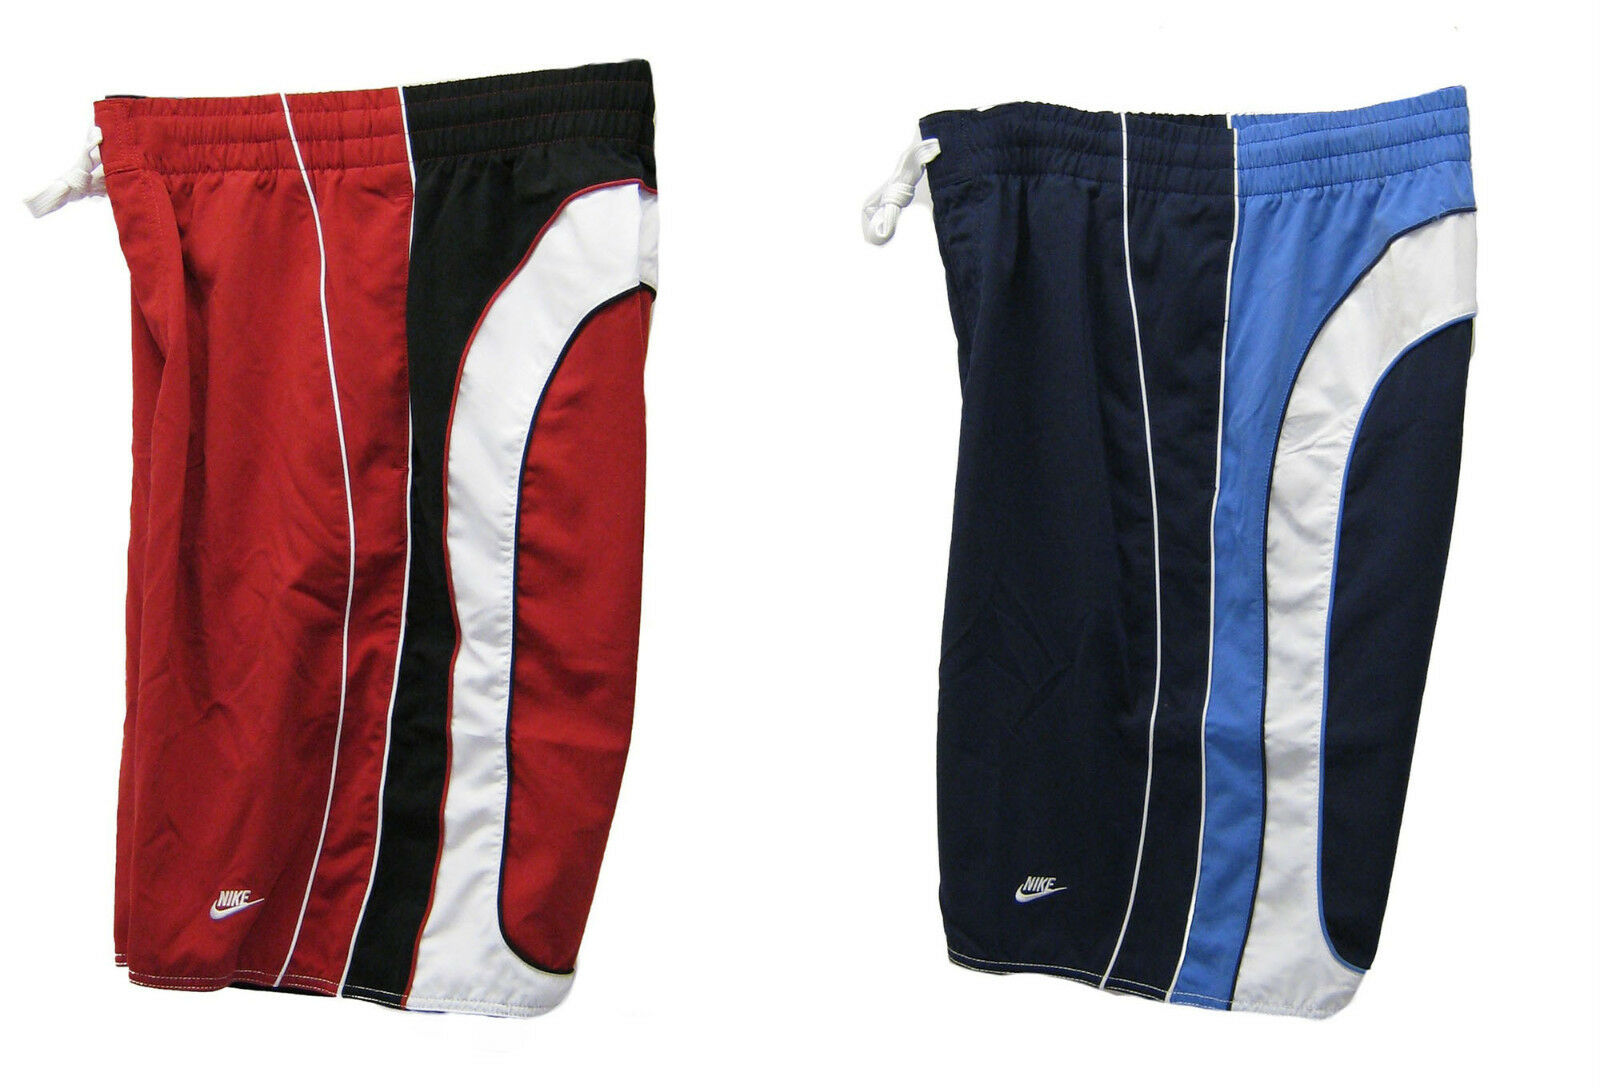 2 Pairs NEW NIKE Active Beach Water Sports Board Shorts Trunks Red & bluee L